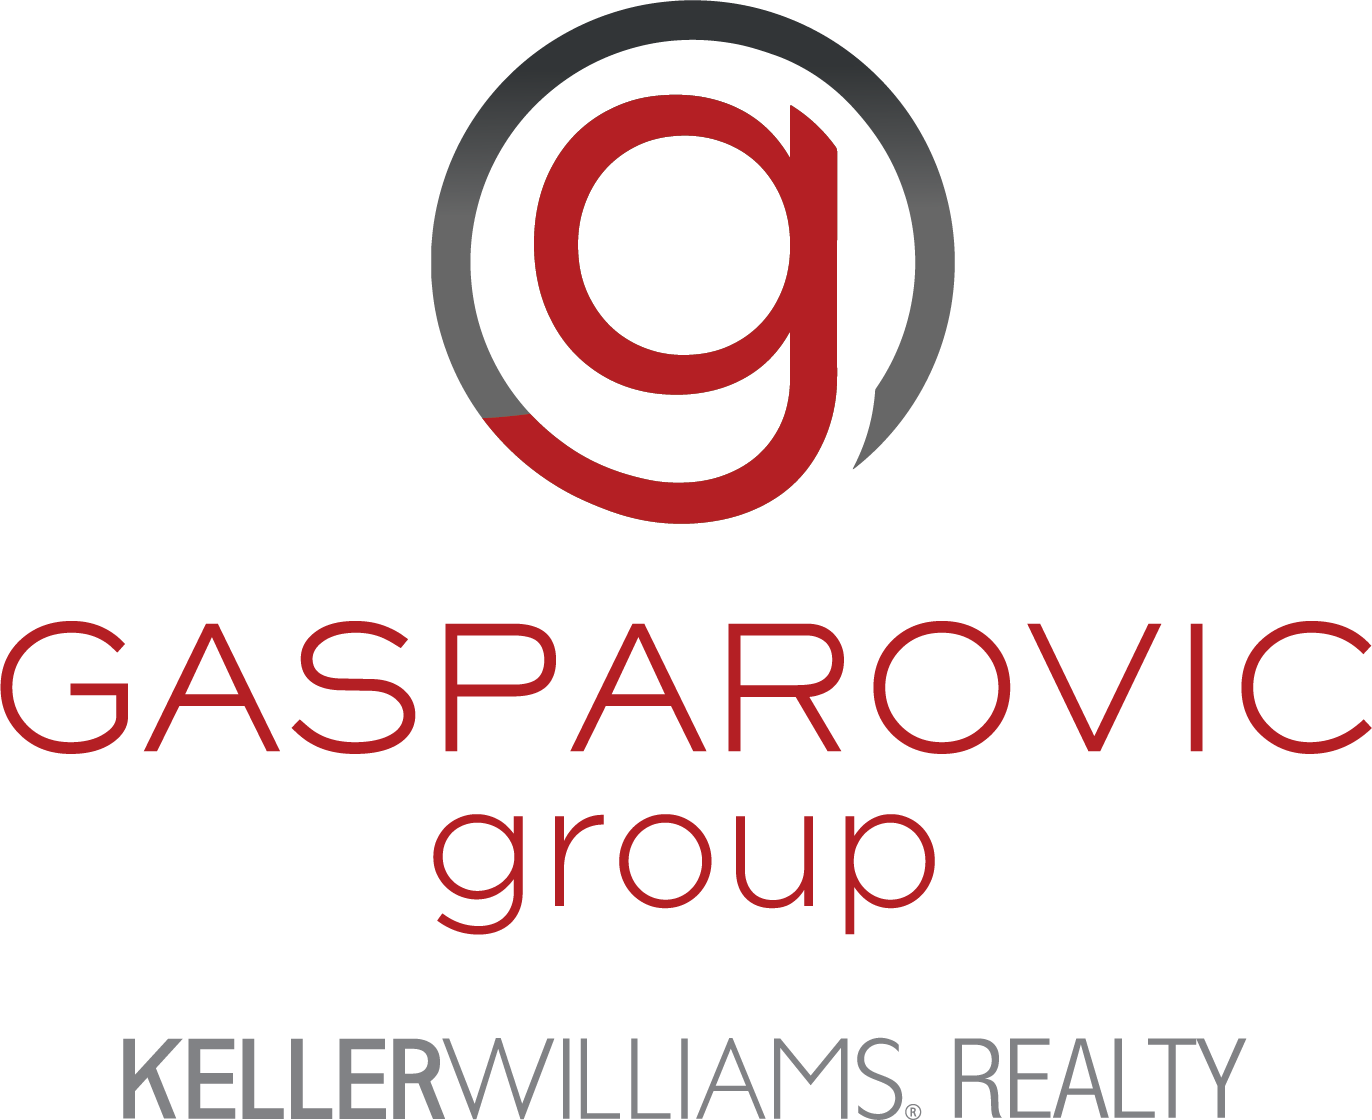 Gasparovic Group, Keller Williams Realty logo